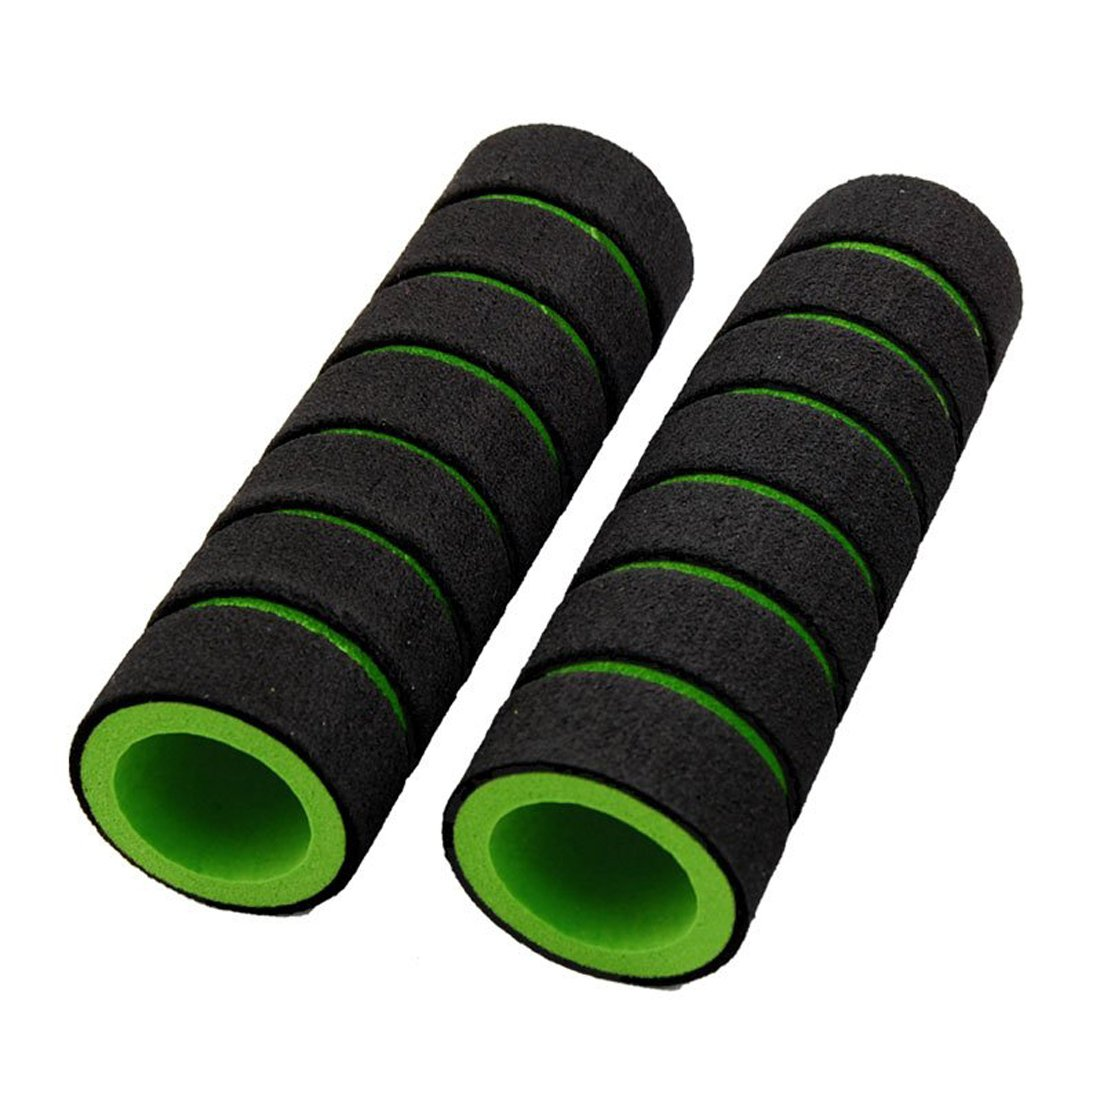 SODIAL(R) Nonslip Soft Foam Bike Bicycle Handle Bar Grips Cover 4 Pcs